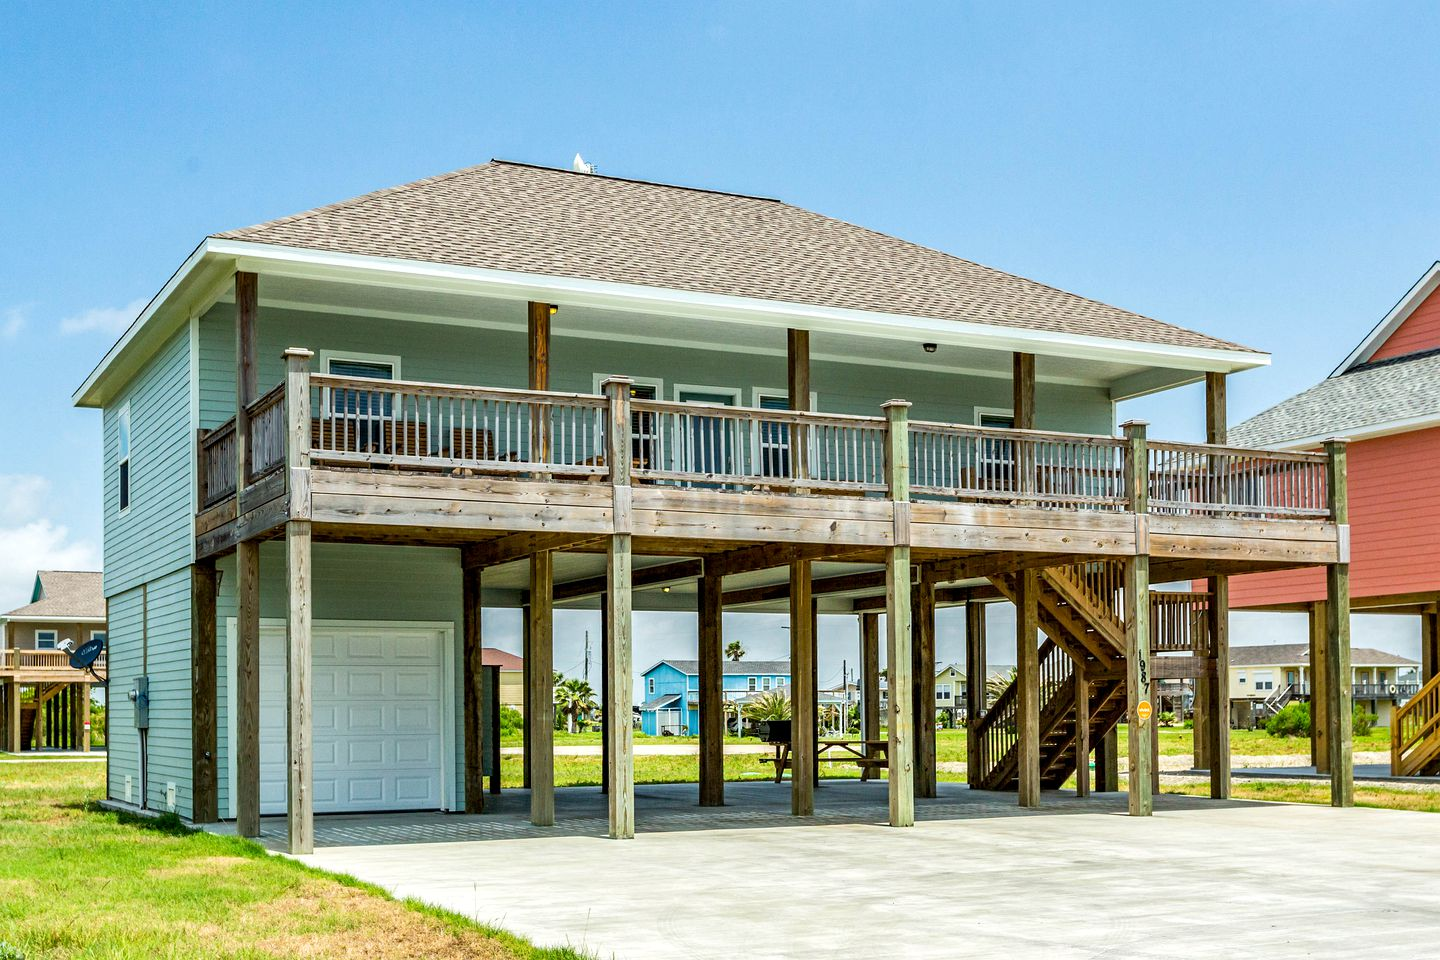 Beach Houses (Crystal Beach, Texas, United States)